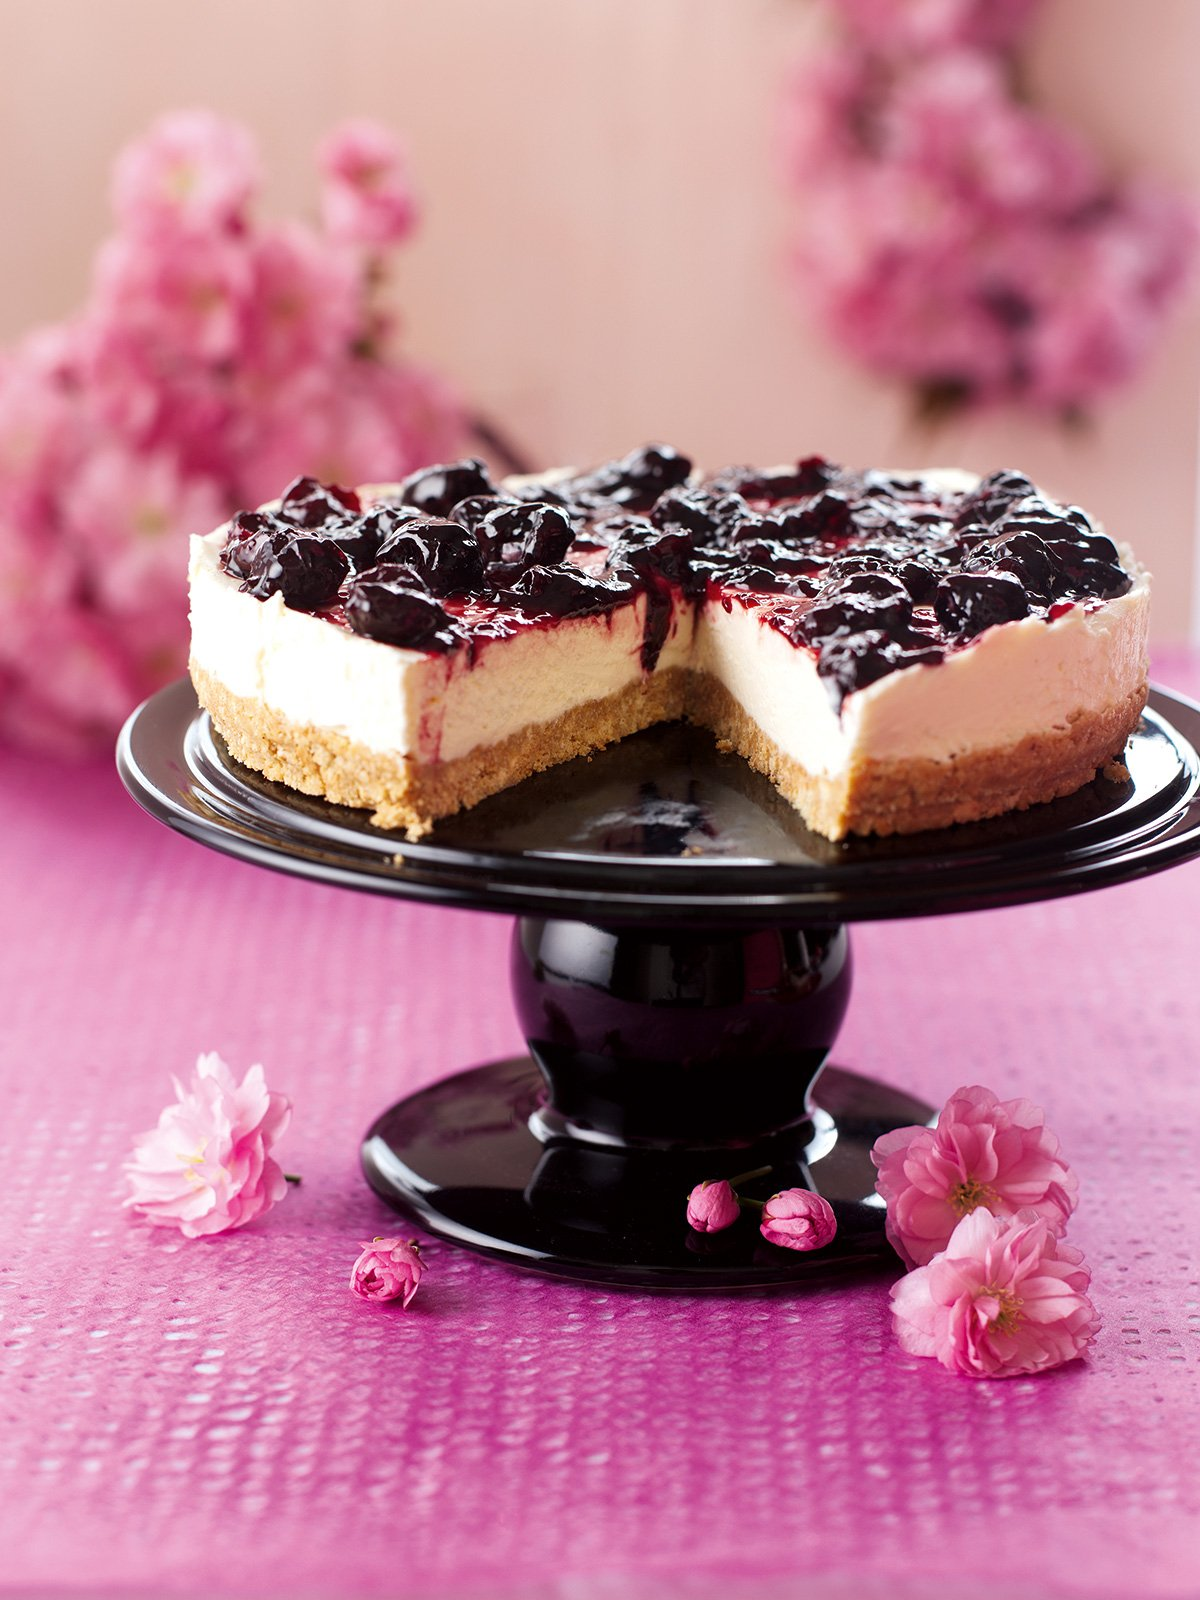 Cherry Cheesecake Nigella S Recipes Nigella Lawson